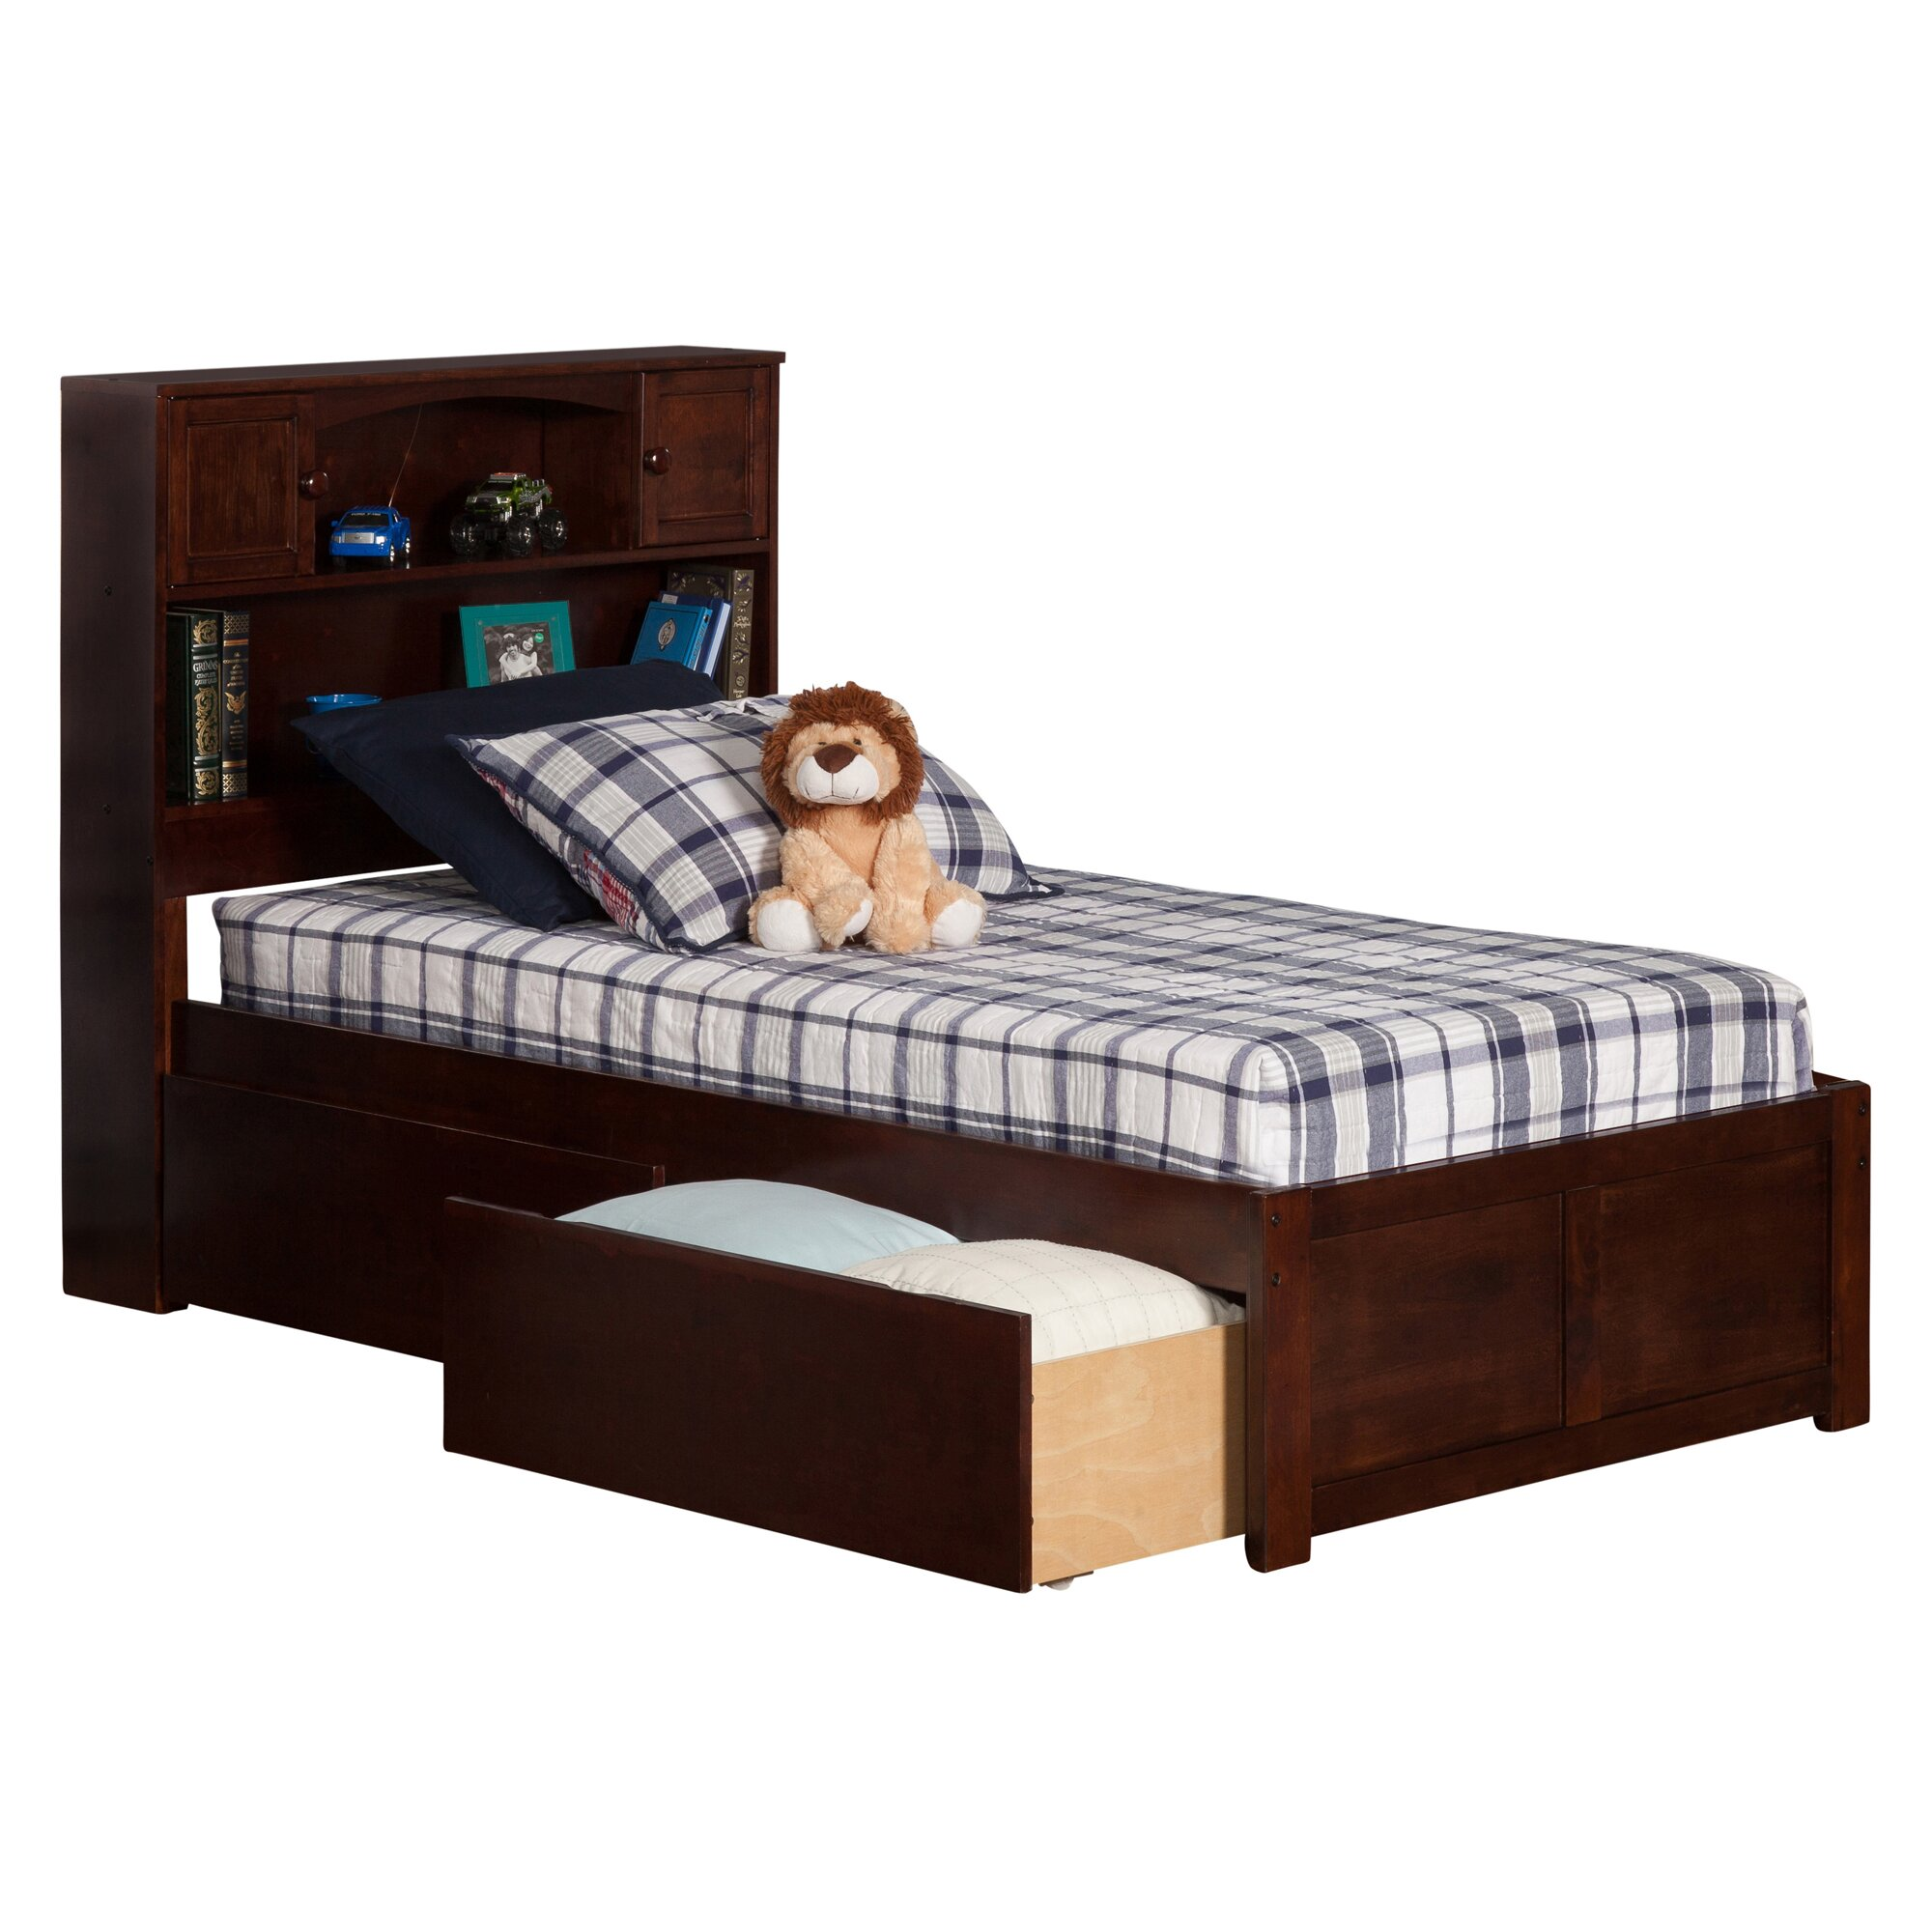 Atlantic Furniture Newport Extra Long Twin Platform Bed With Storage Reviews Wayfair